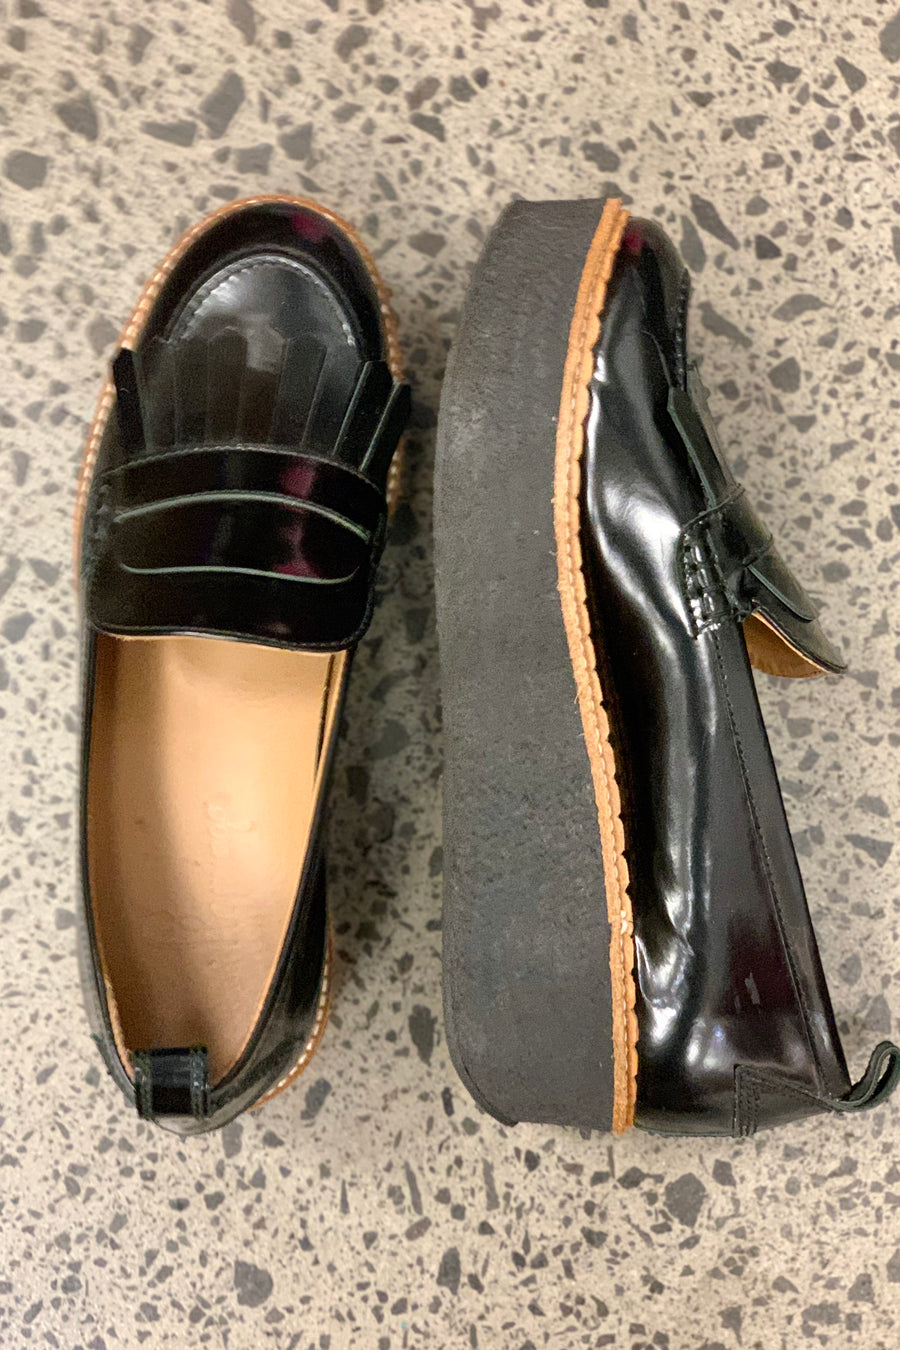 Scarpa Leather Flamingo Platform Loafers - size 39. RRP was $449